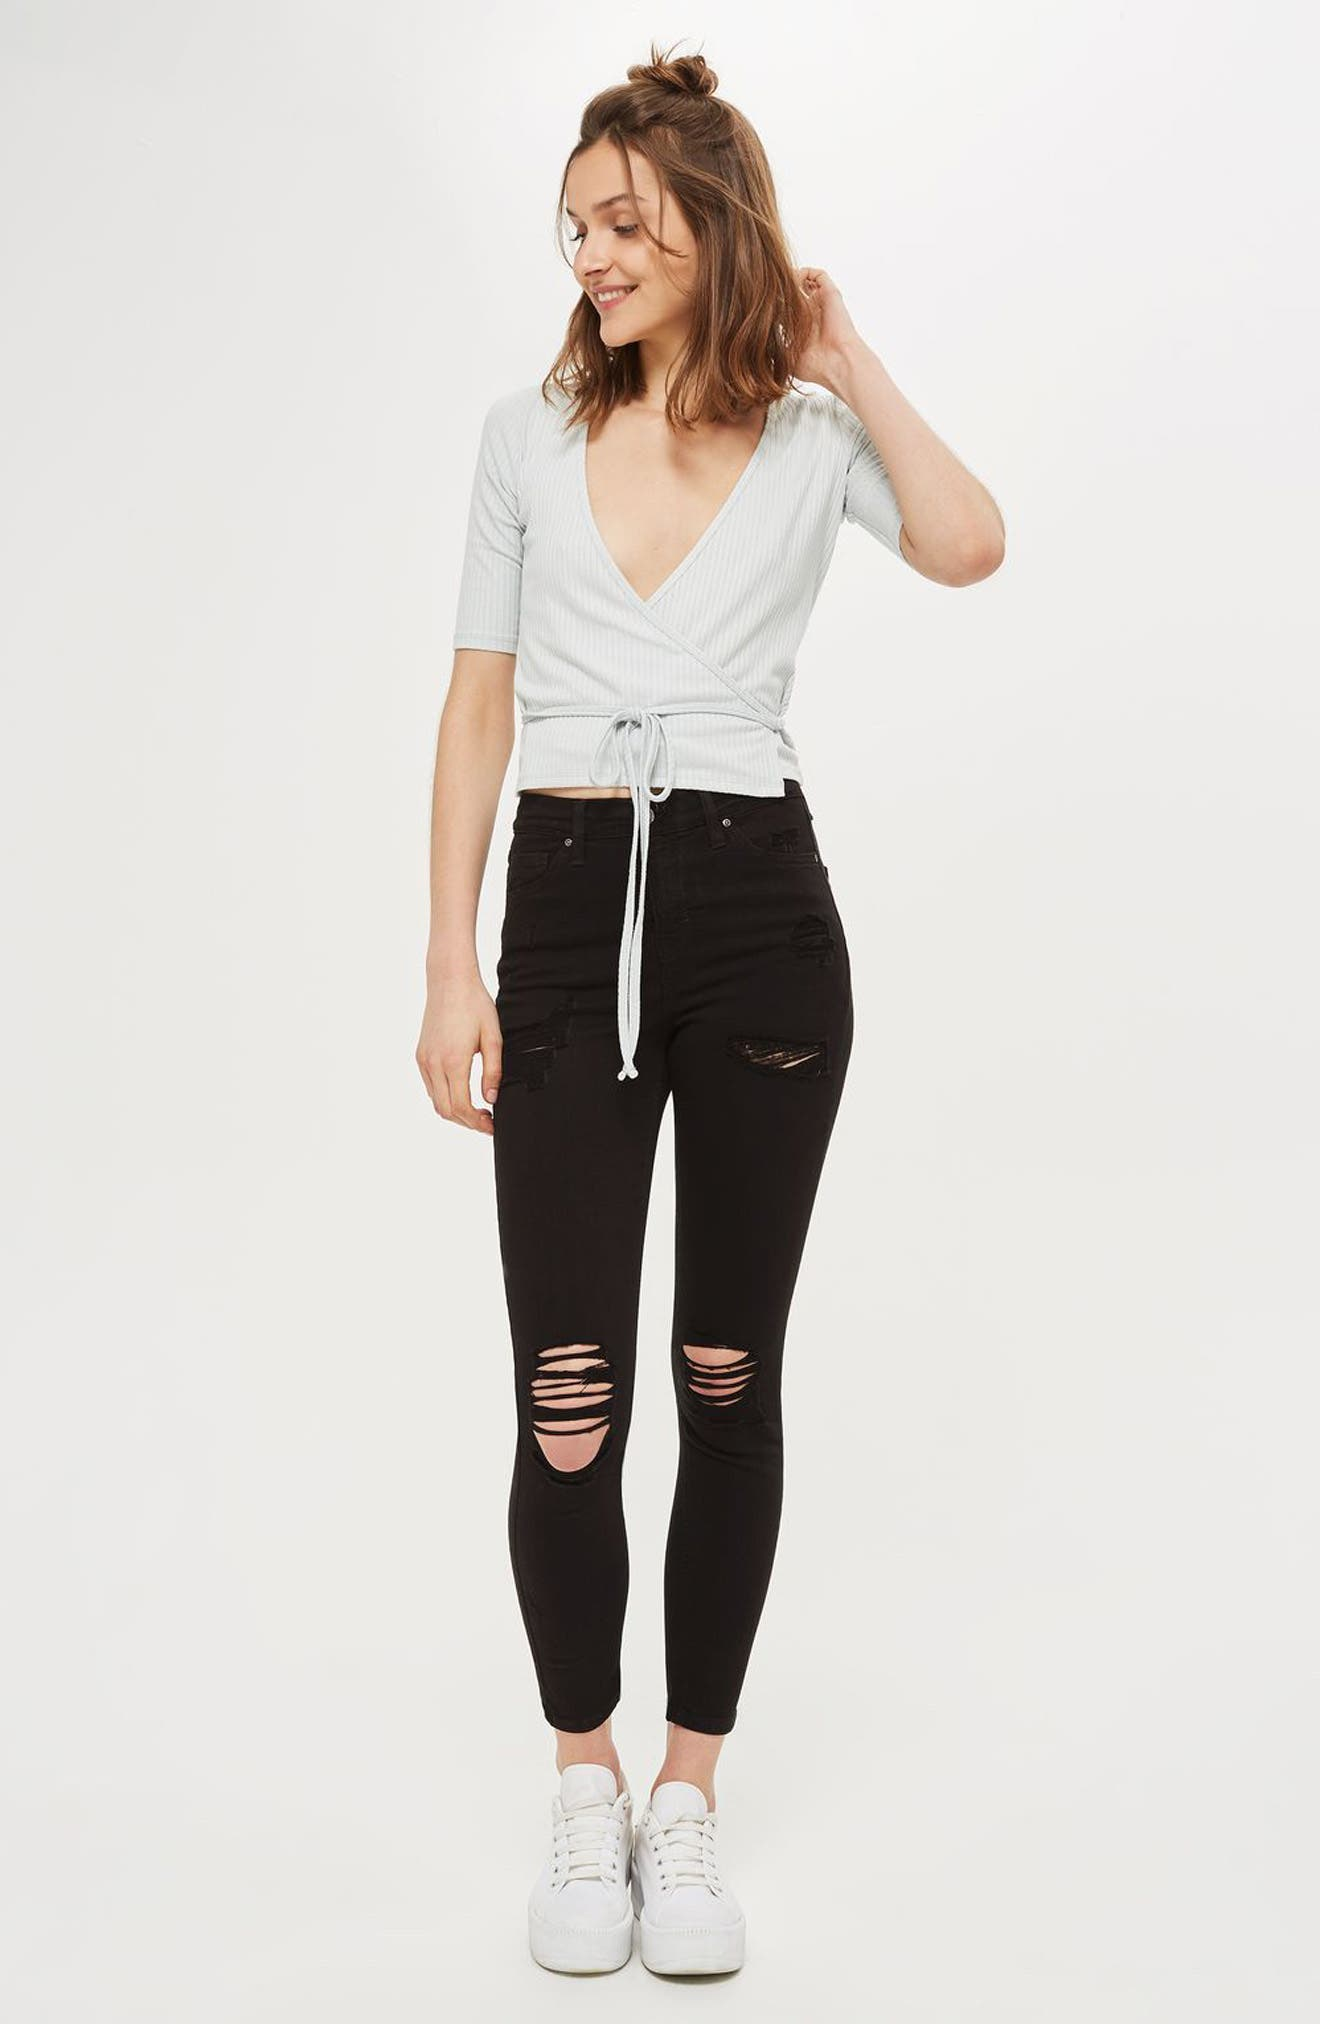 Ripped High Waist Ankle Skinny Jeans,                             Alternate thumbnail 13, color,                             001